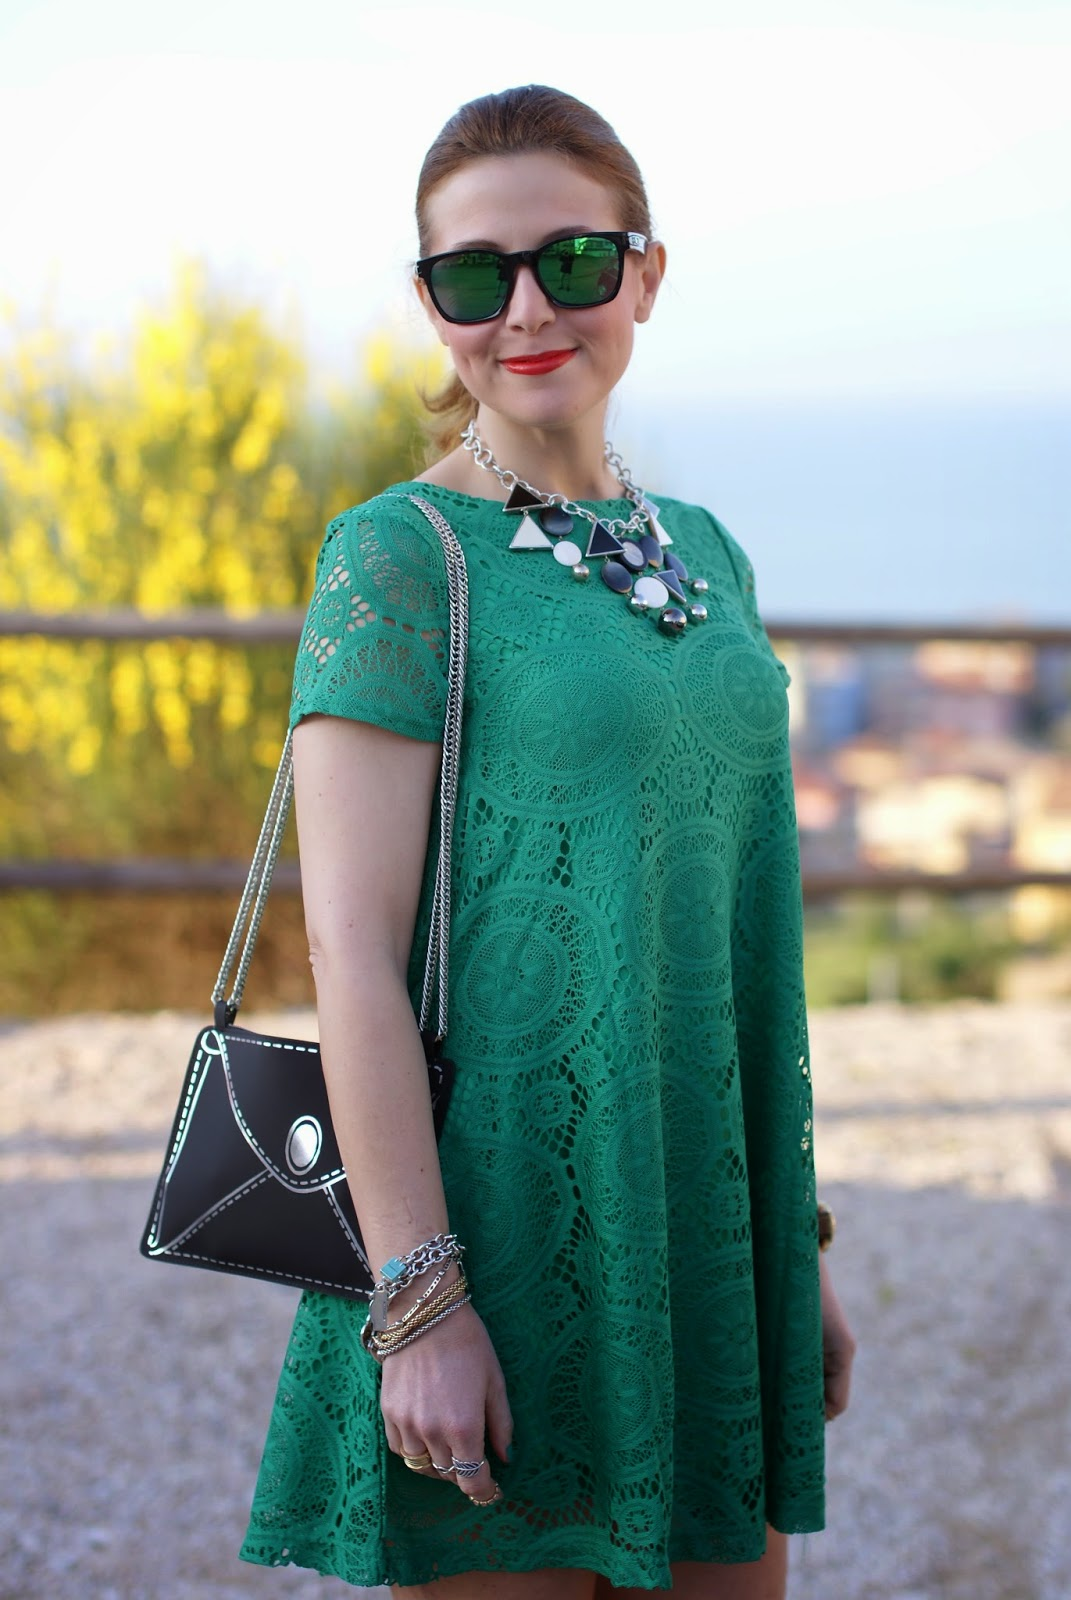 Vitti Ferria Contin collana, Today I'm me evening bag, Sheinside green lace dress, Fashion and Cookies, fashion blogger